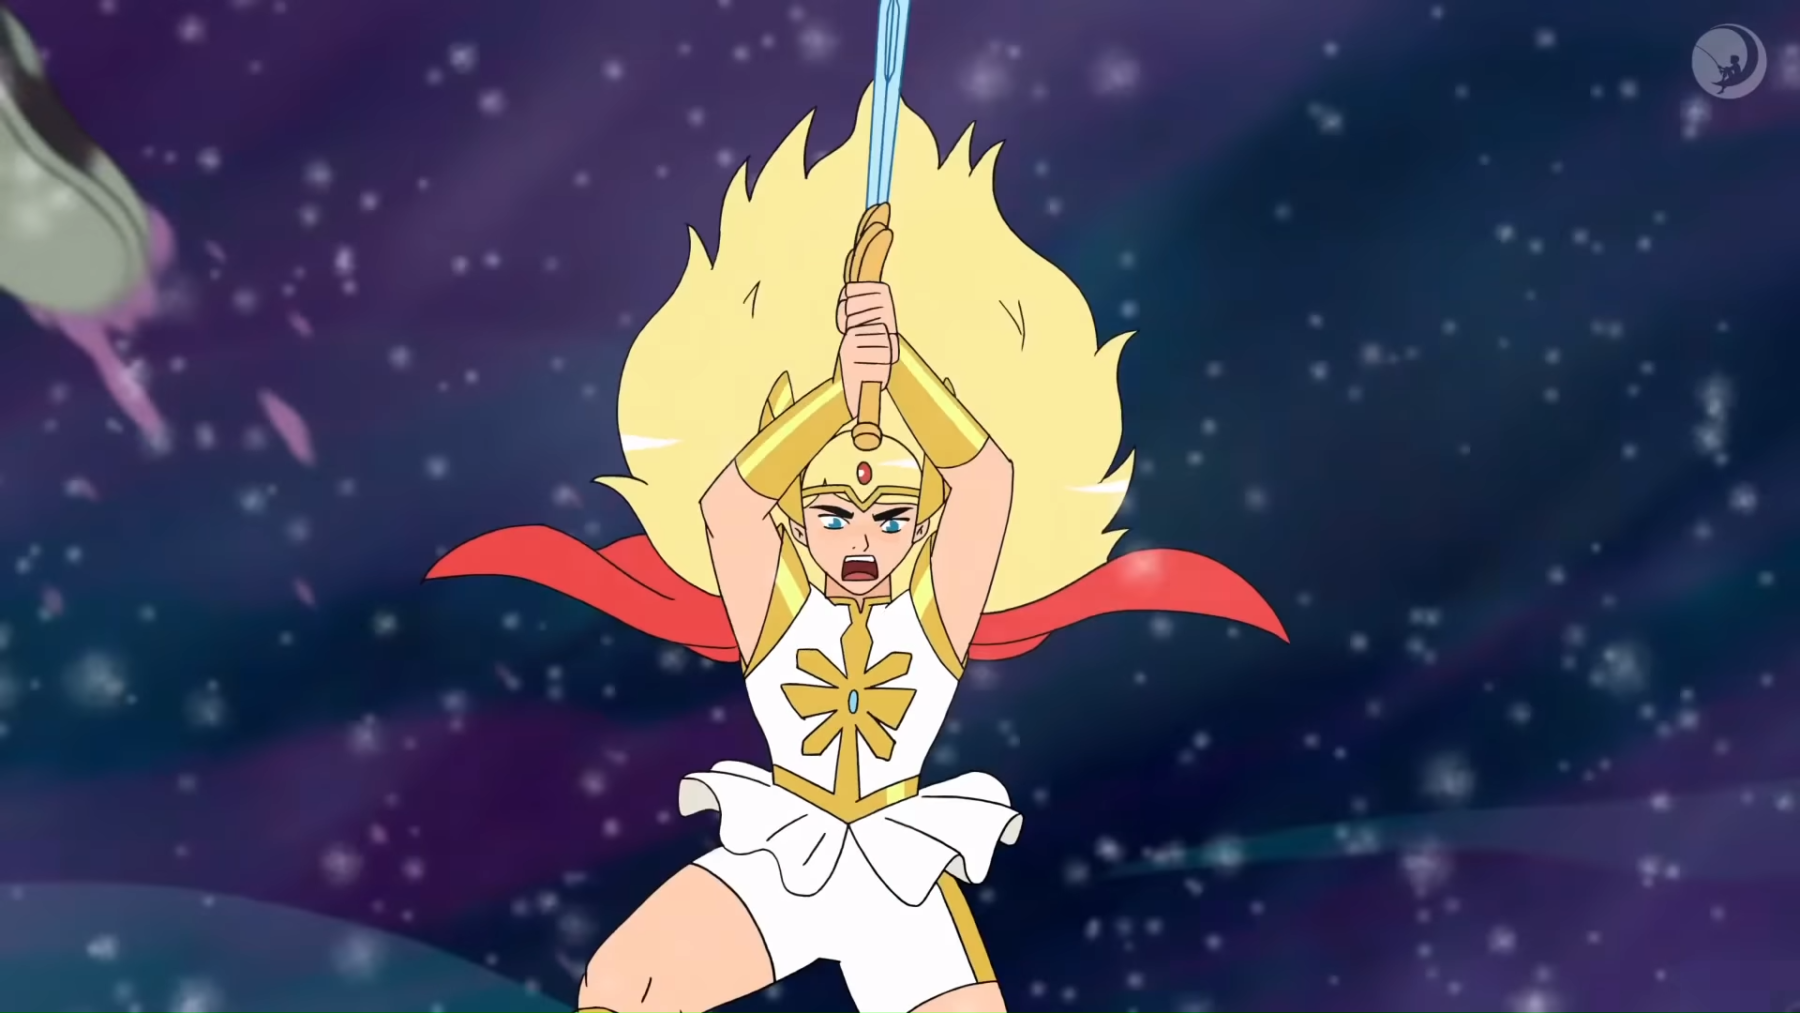 She-Ra and the Princesses of Power gets a new season 2 trailer